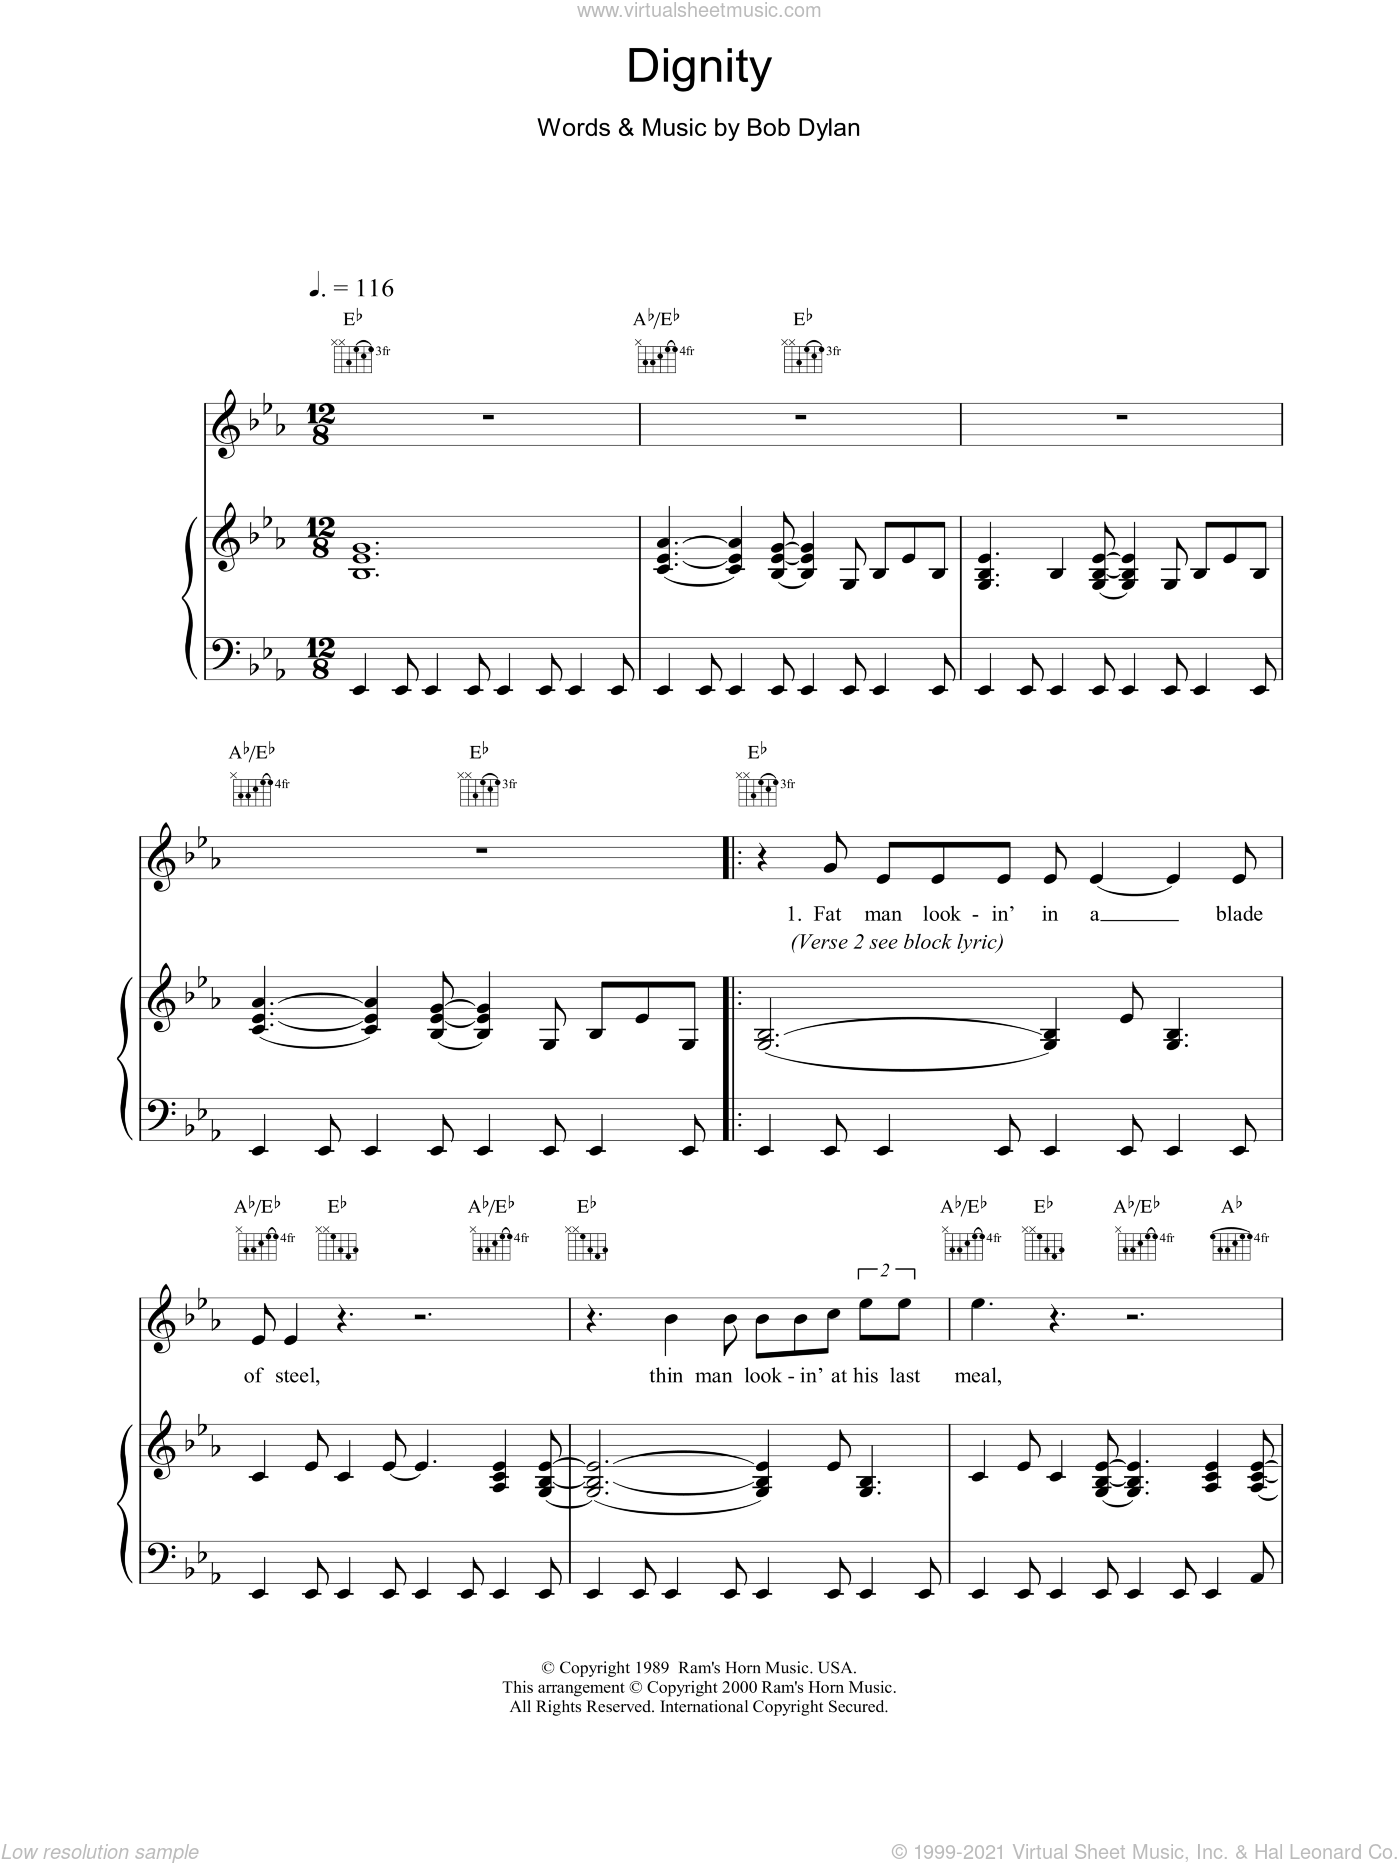 Dignity sheet music for voice, piano or guitar by Bob Dylan, intermediate skill level